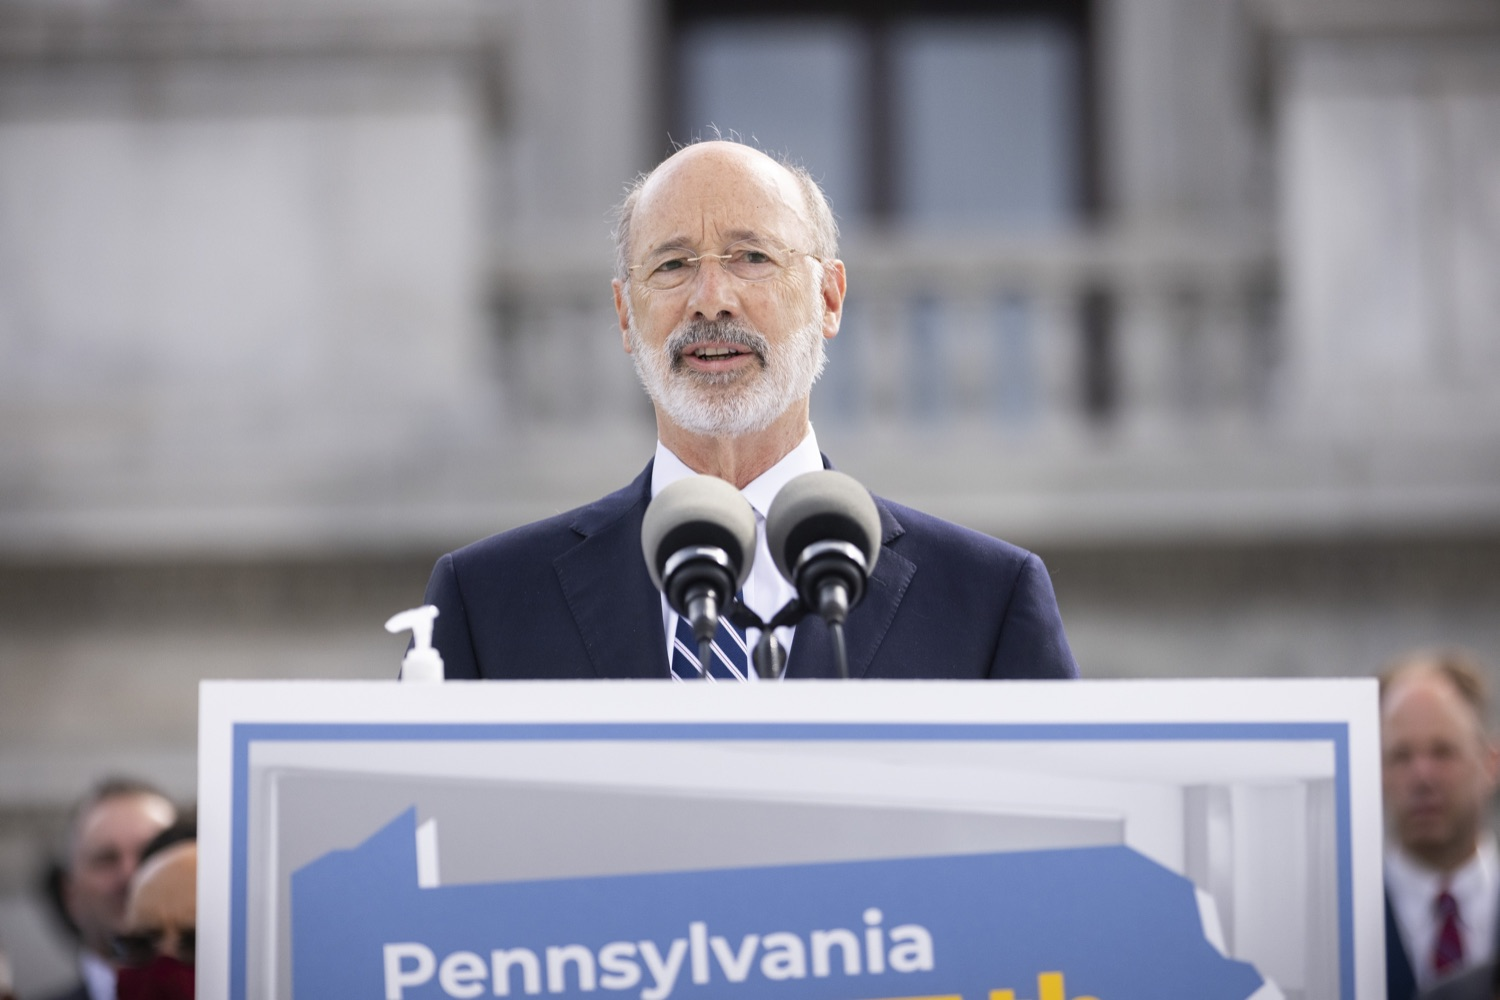 """<a href=""""https://filesource.wostreaming.net/commonwealthofpa/photo/18810_gov_fairFunding_dz_010.jpg"""" target=""""_blank"""">⇣Download Photo<br></a>Pennsylvania Governor Tom Wolf speaking with the press.  Continuing their commitment to students and working families, Governor Tom Wolf and House and Senate Democratic Leaders held a Capitol press conference today to highlight the injustice in the states school funding system and call for fair funding of every district.  Harrisburg, PA   June 8, 2021"""